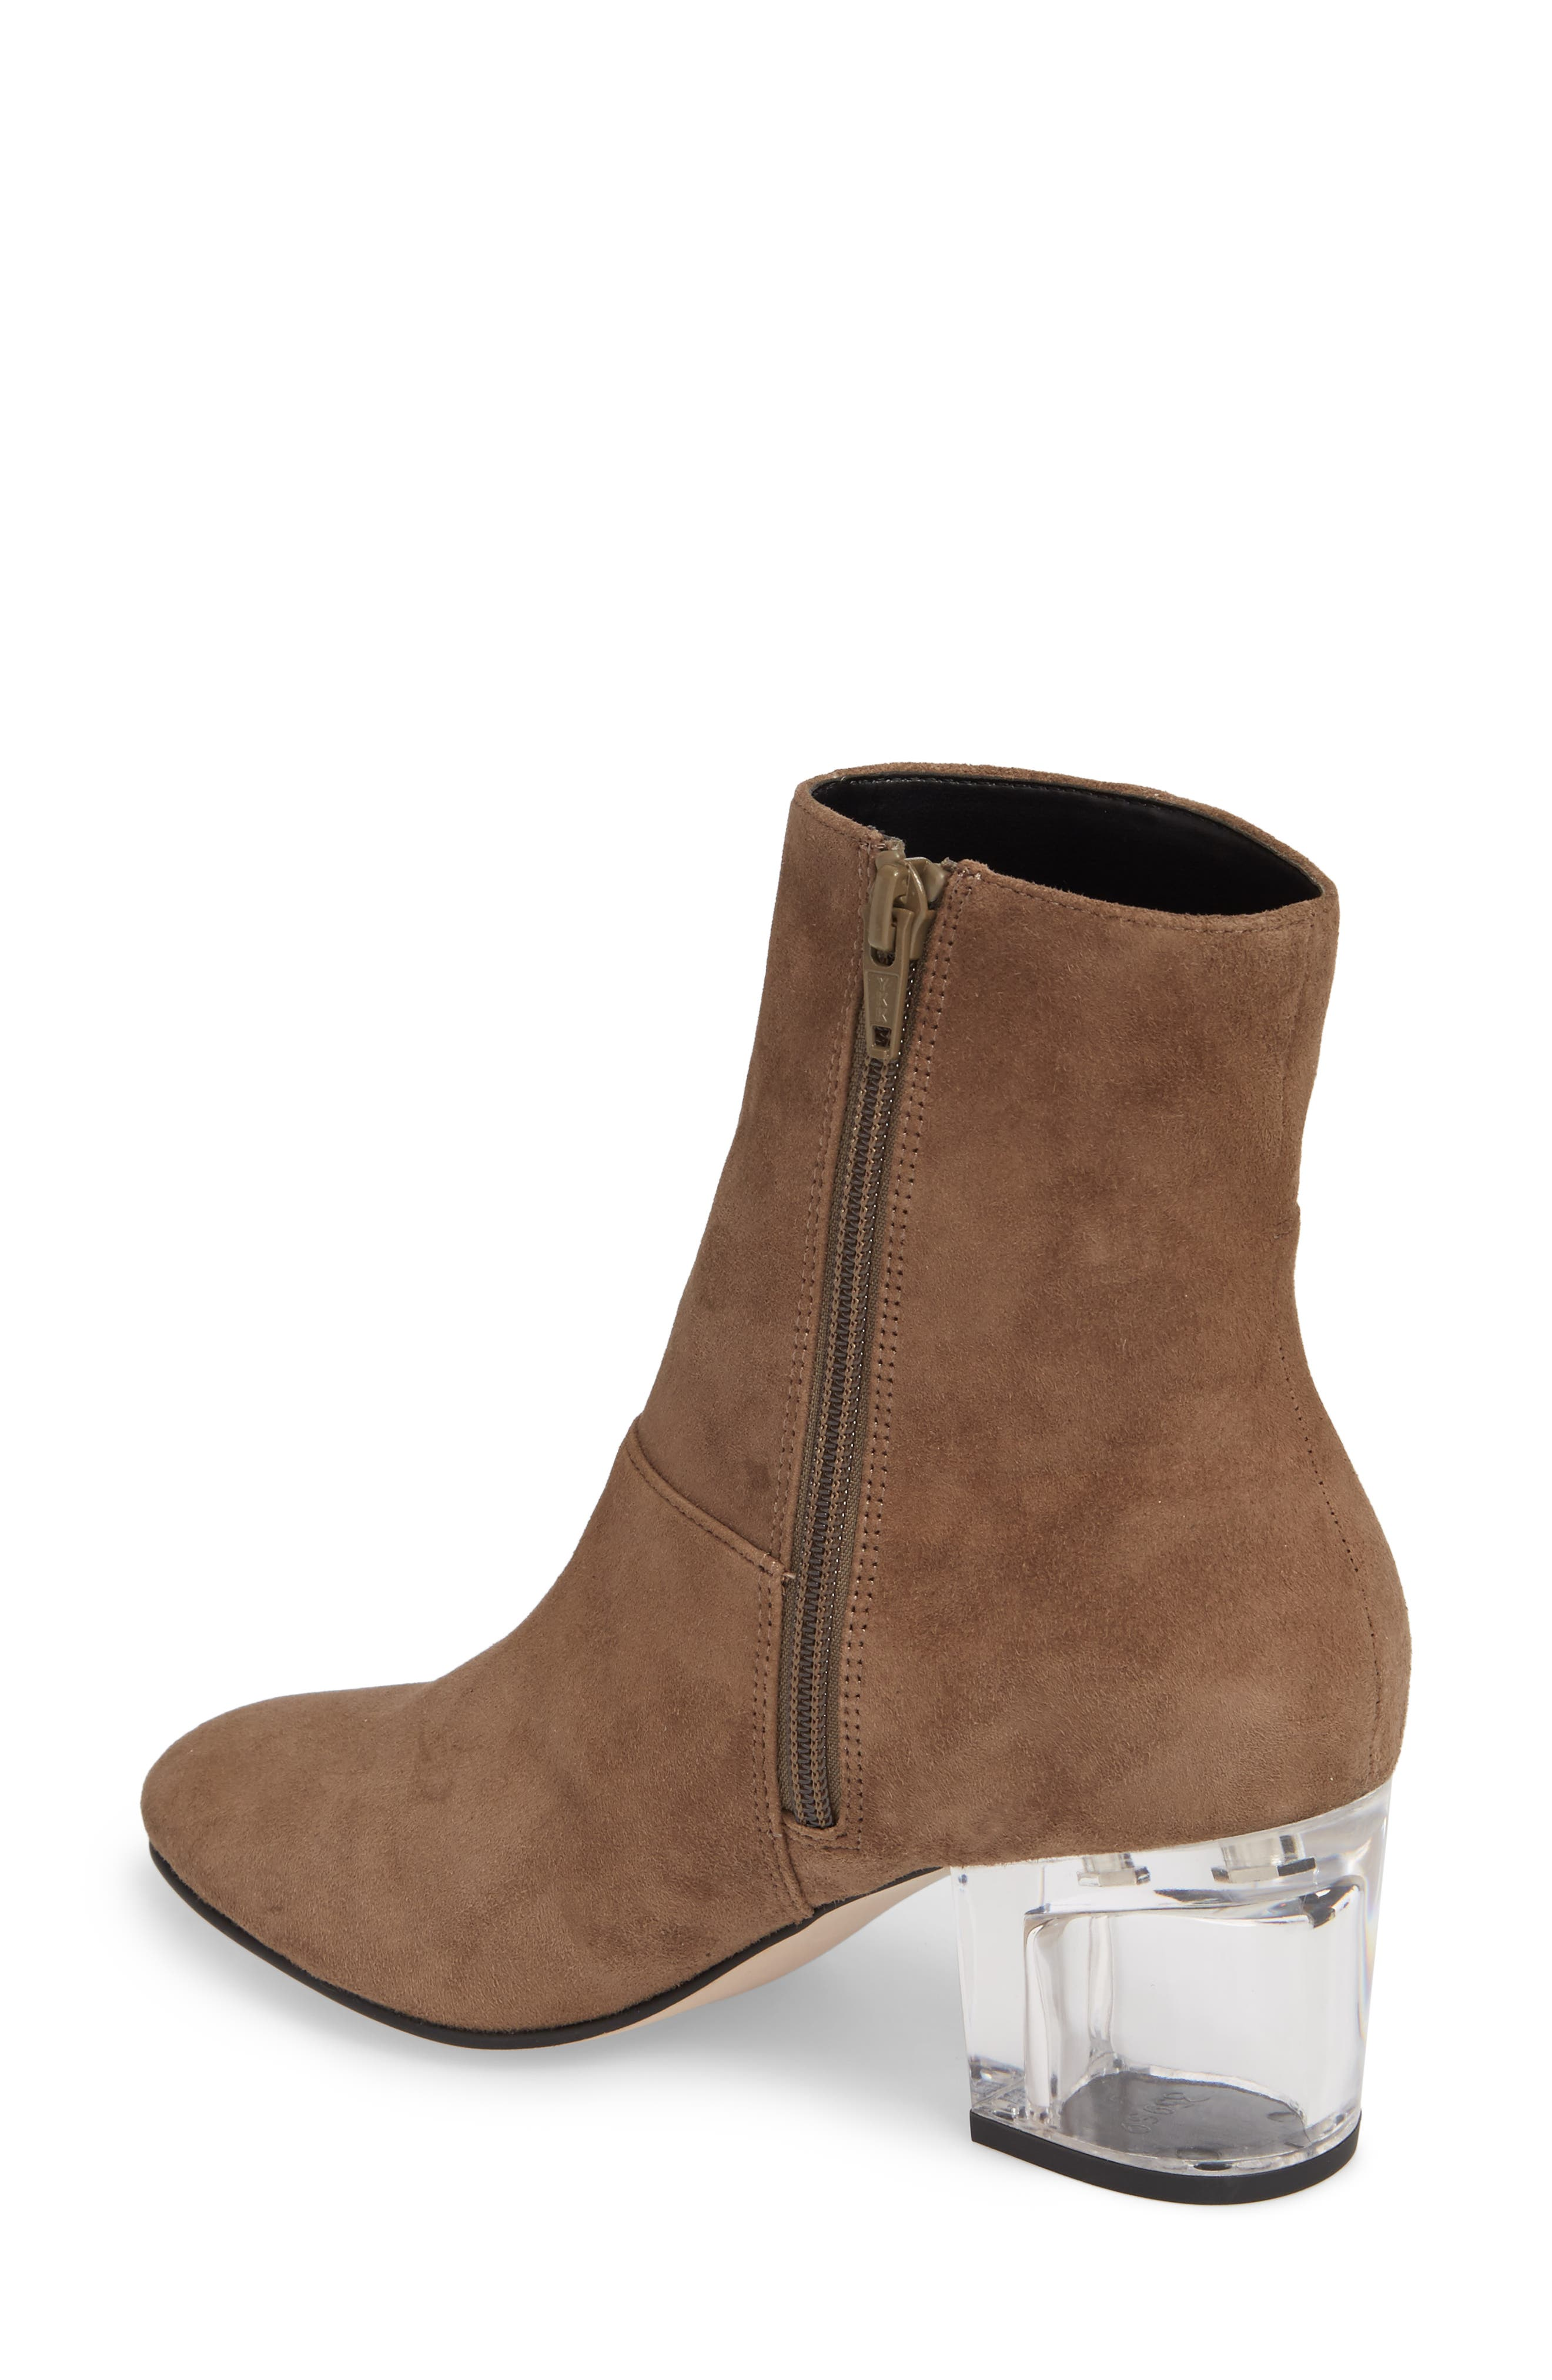 Dinah Bootie,                             Alternate thumbnail 2, color,                             Night Taupe